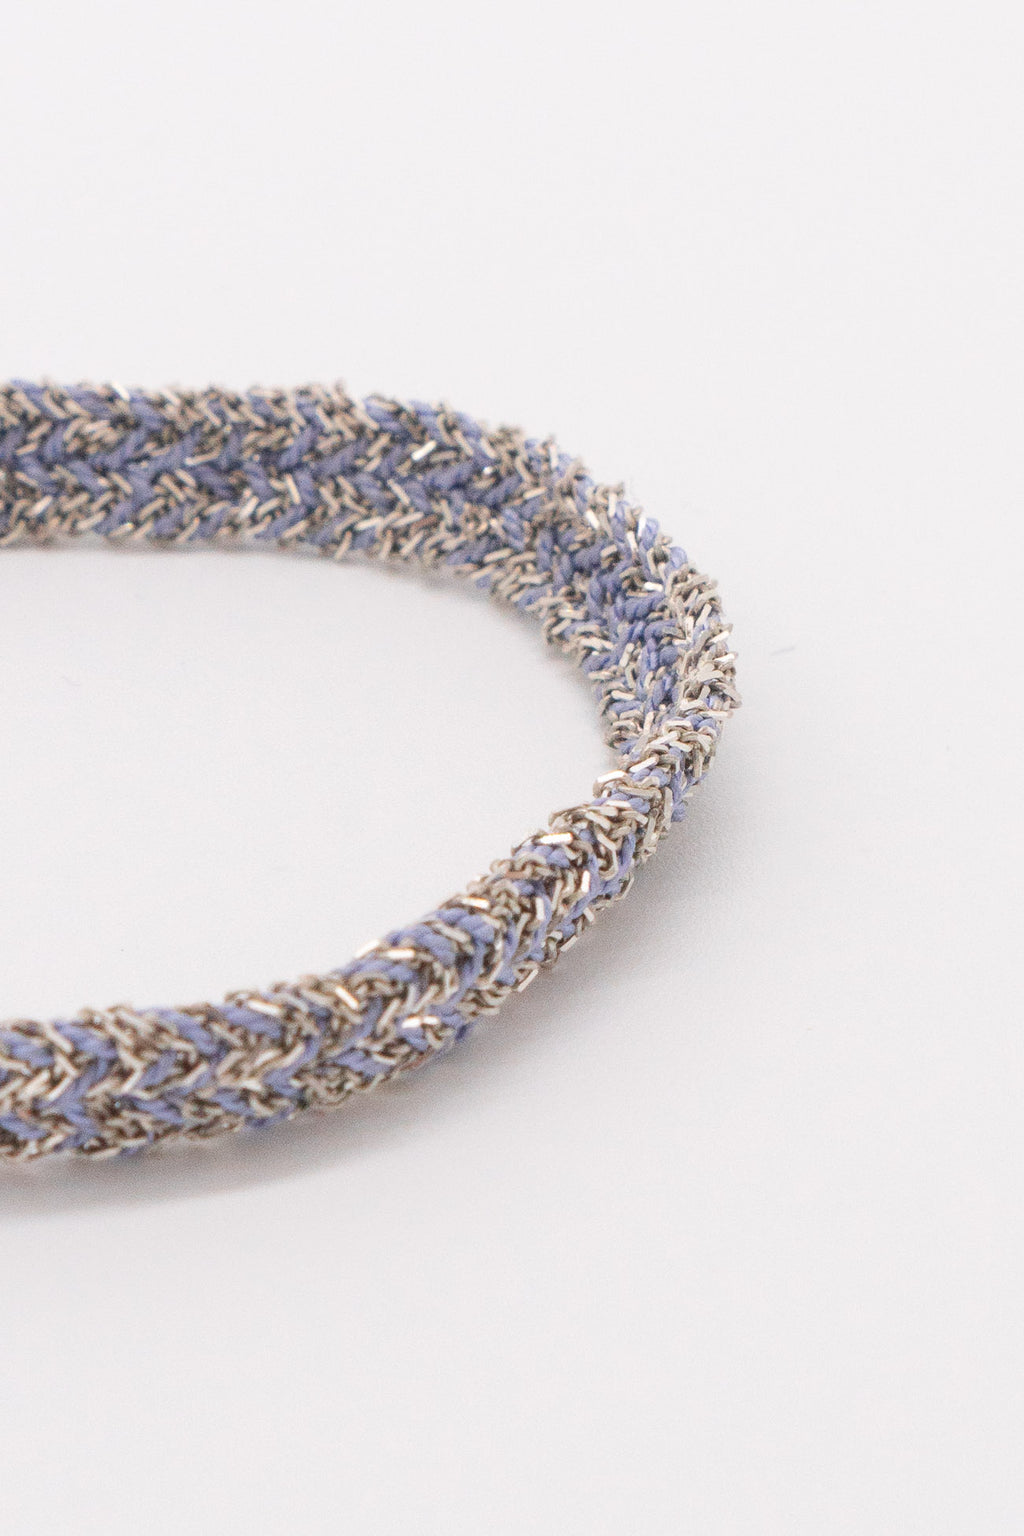 Marie Laure Chamorel Plaited Bracelet in Silver Lila